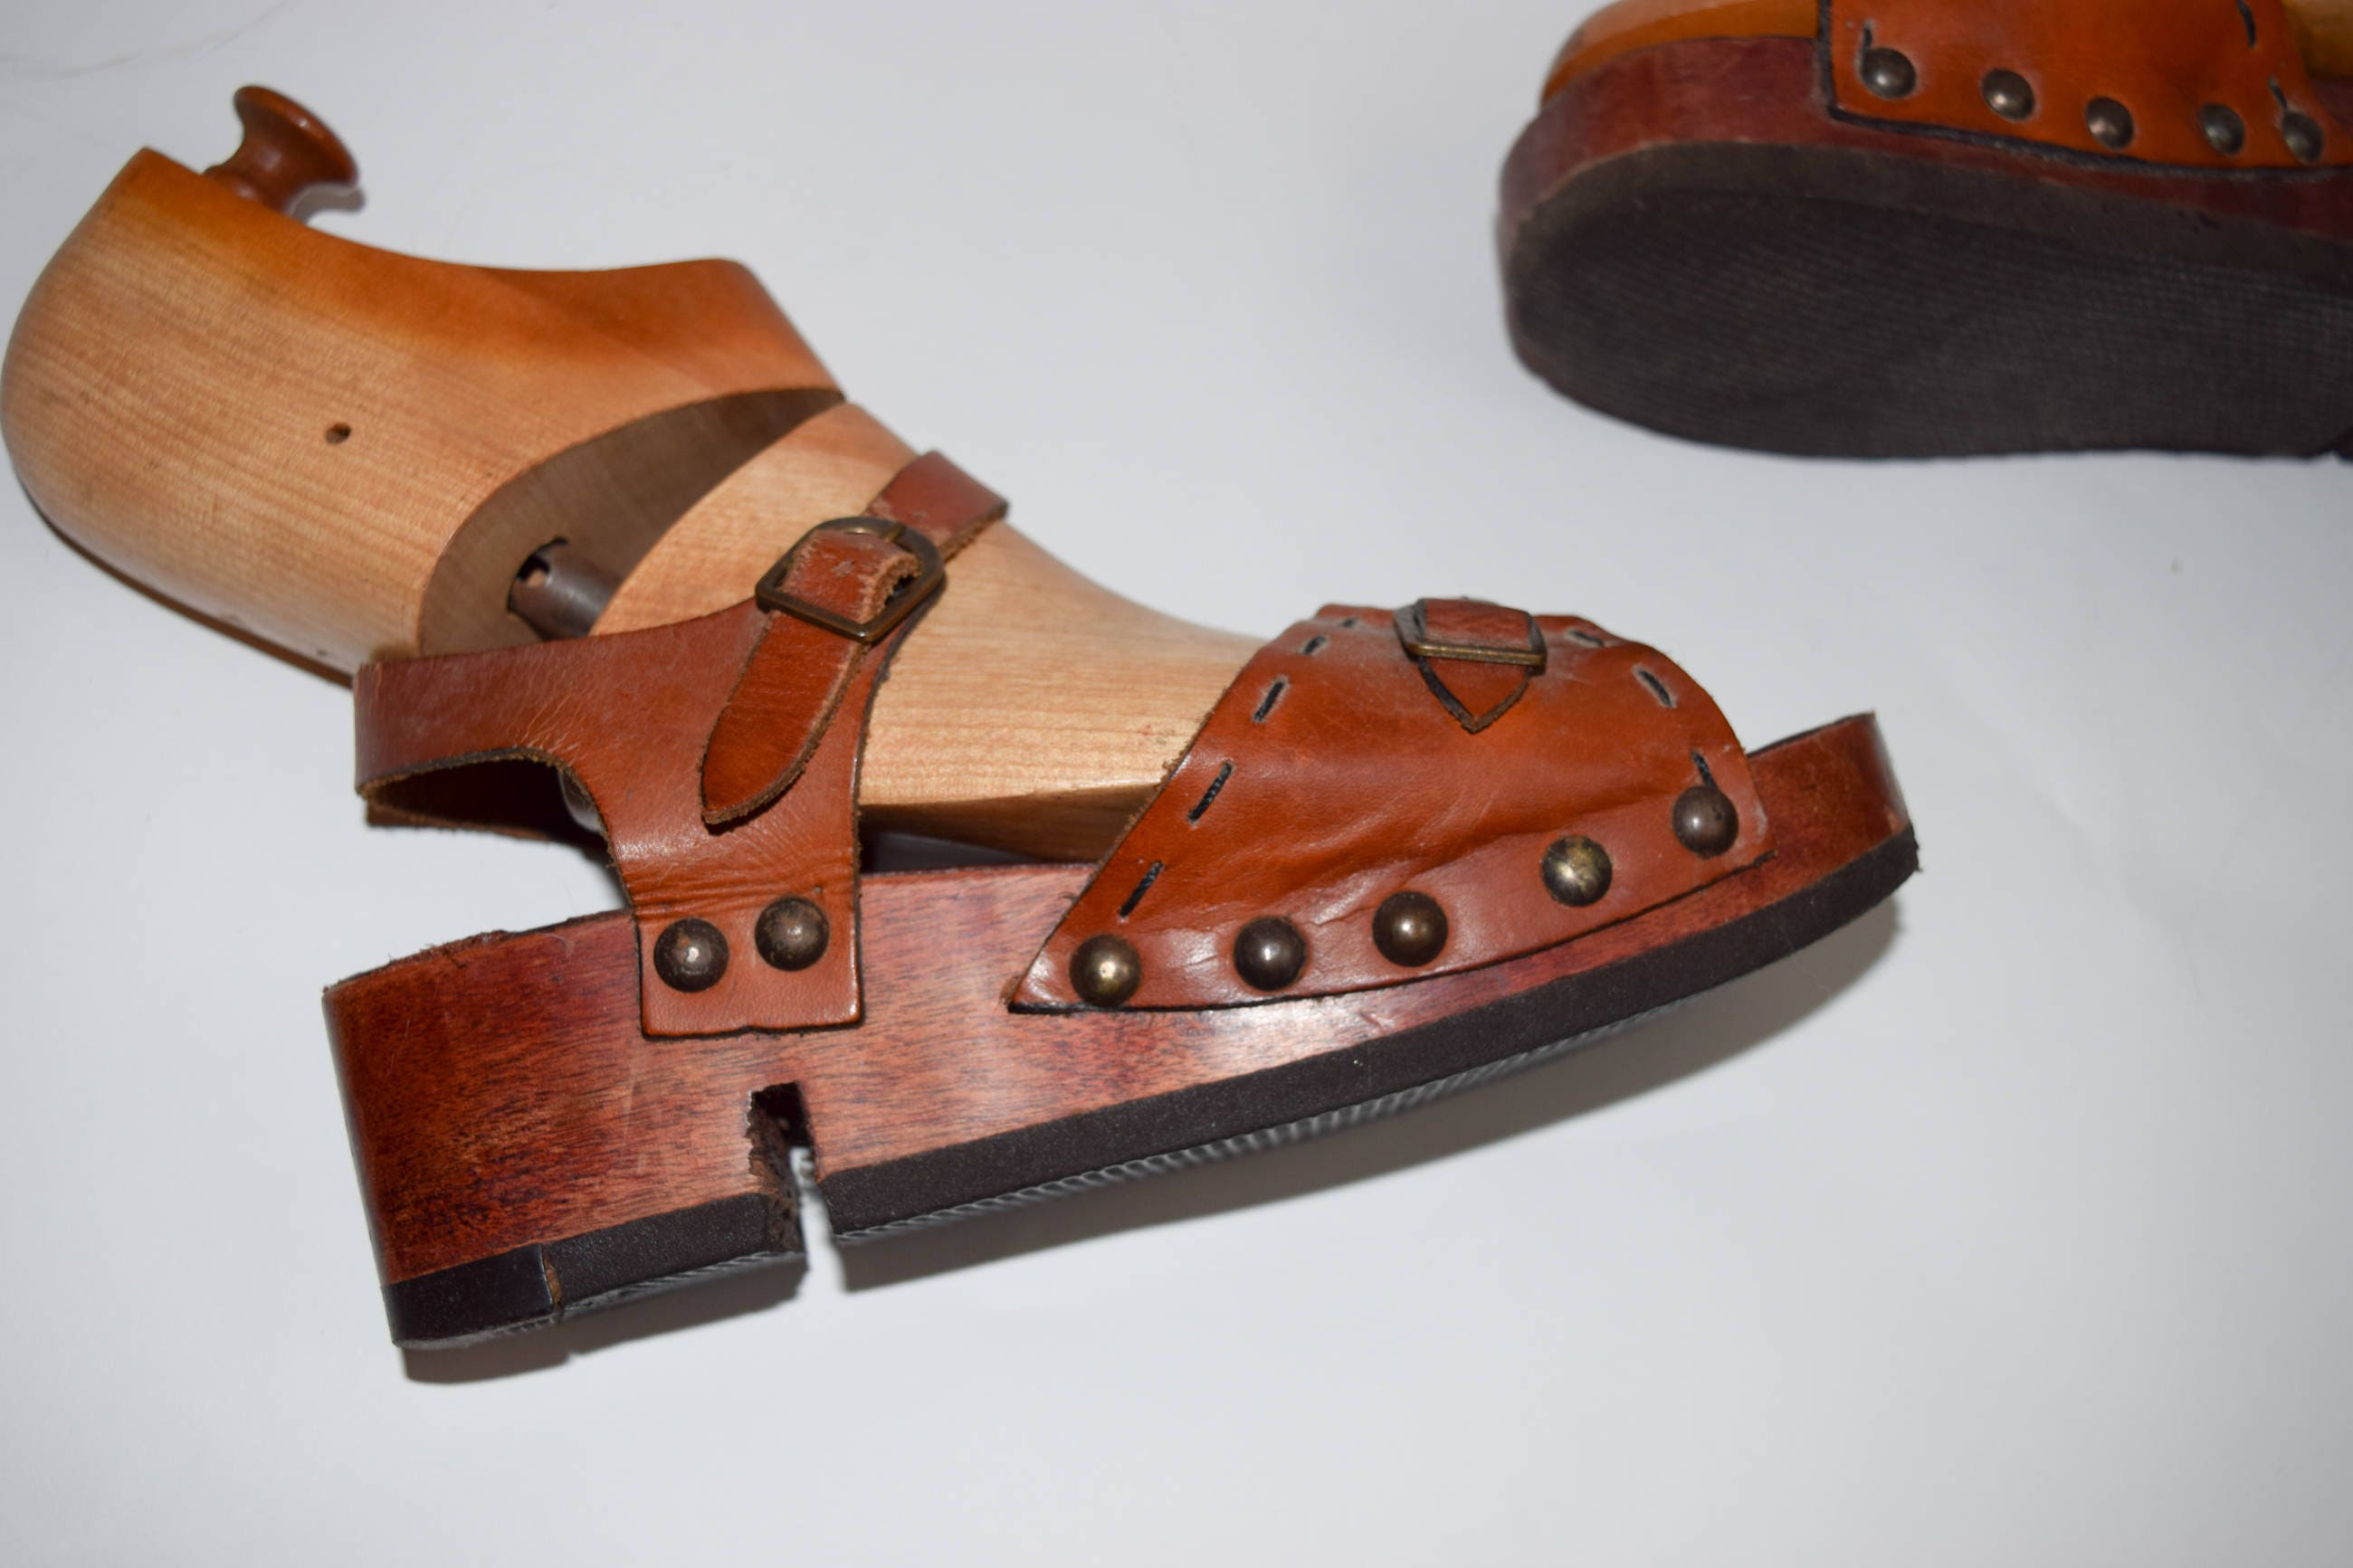 1970s wood sz6-7 and leather platform sandals sz6-7 wood made in Brazil disco shoes wooden platform leather sandals hippie boho seventies brown leather 2a2bcb